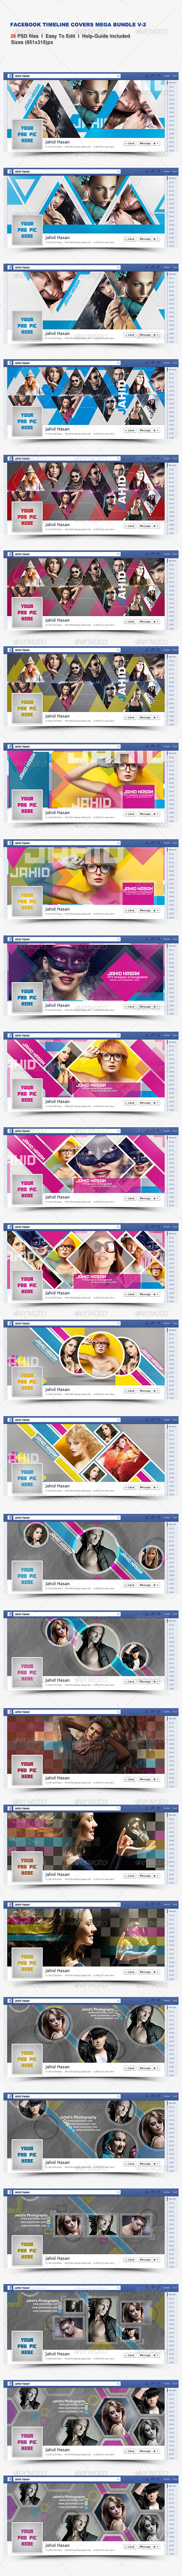 GraphicRiver Facebook Timeline Covers Mega Bundle V-2 8040334